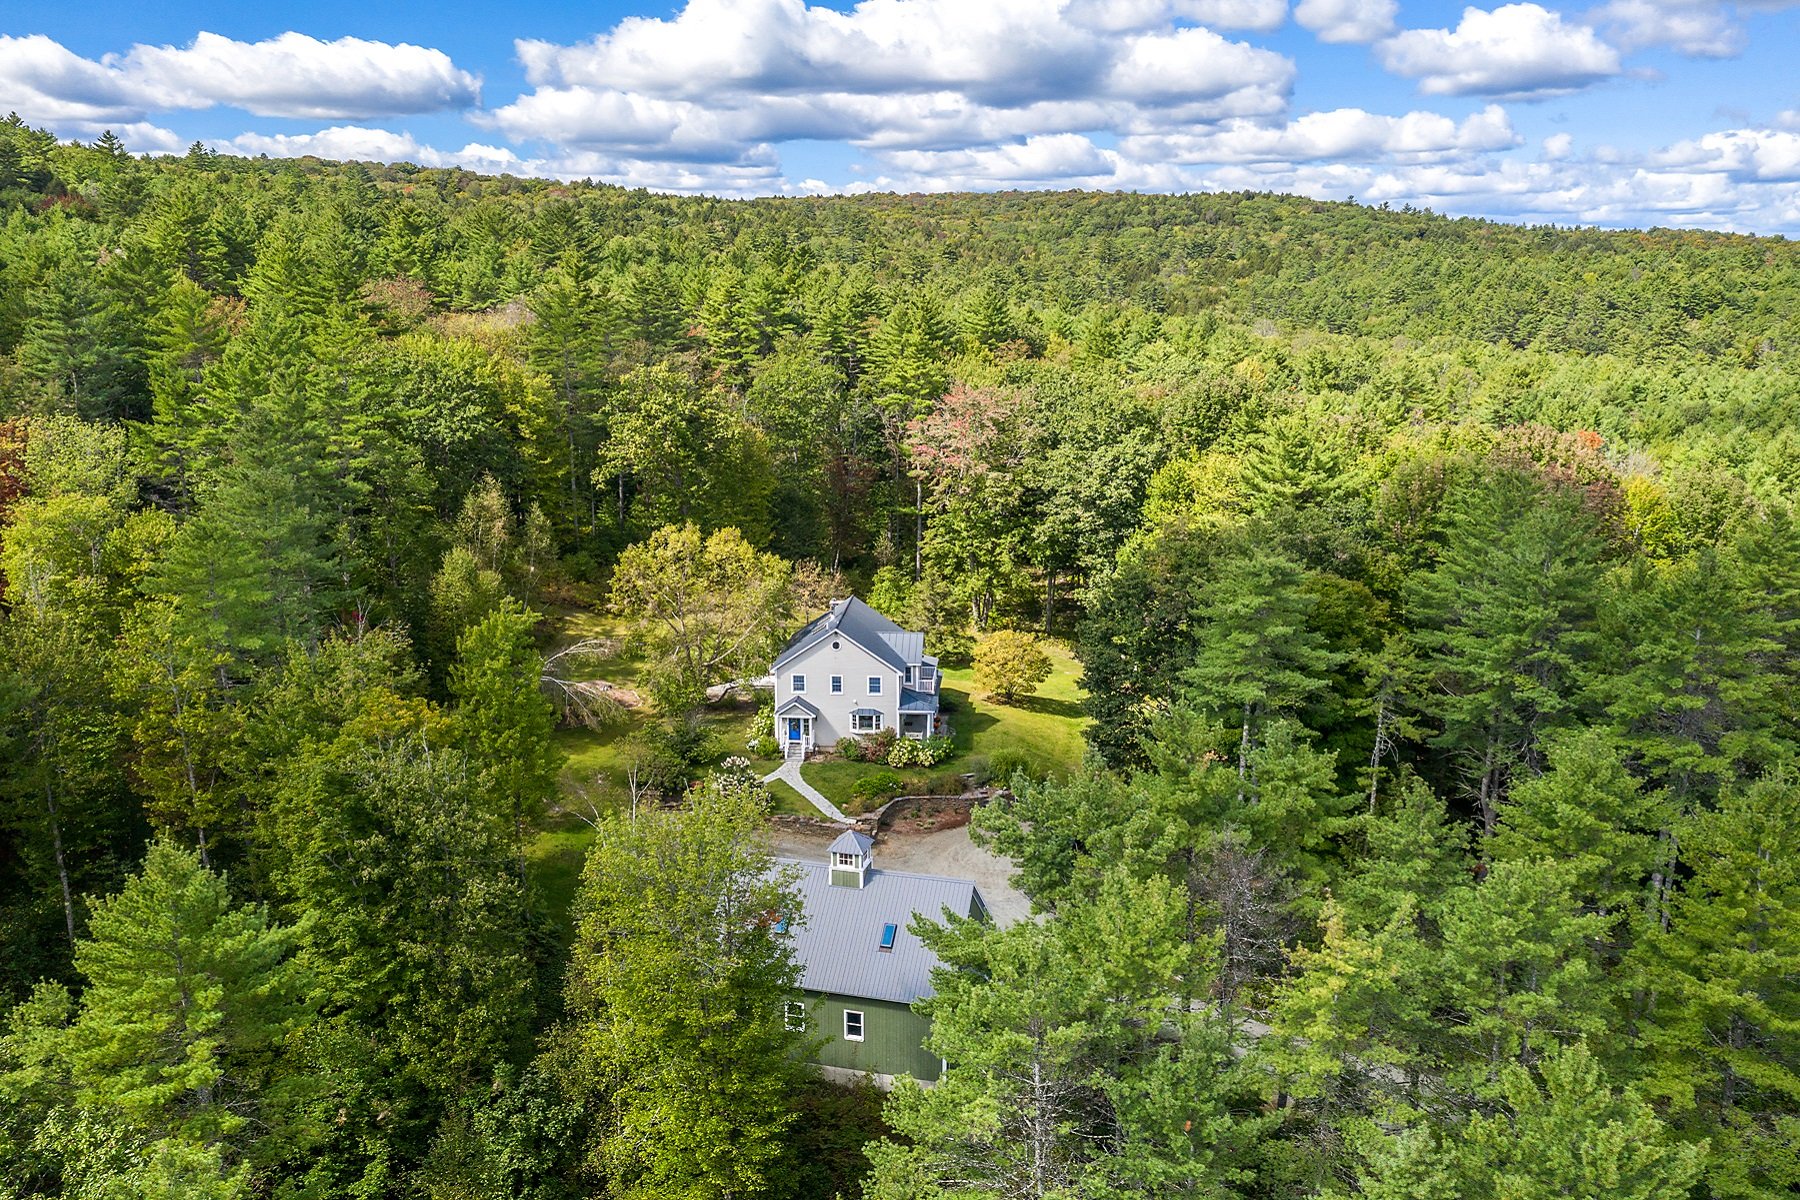 Single Family Homes for Sale at Gracious, Sun-Filled Home 1380 Old Quechee Road Hartford, Vermont 05001 United States